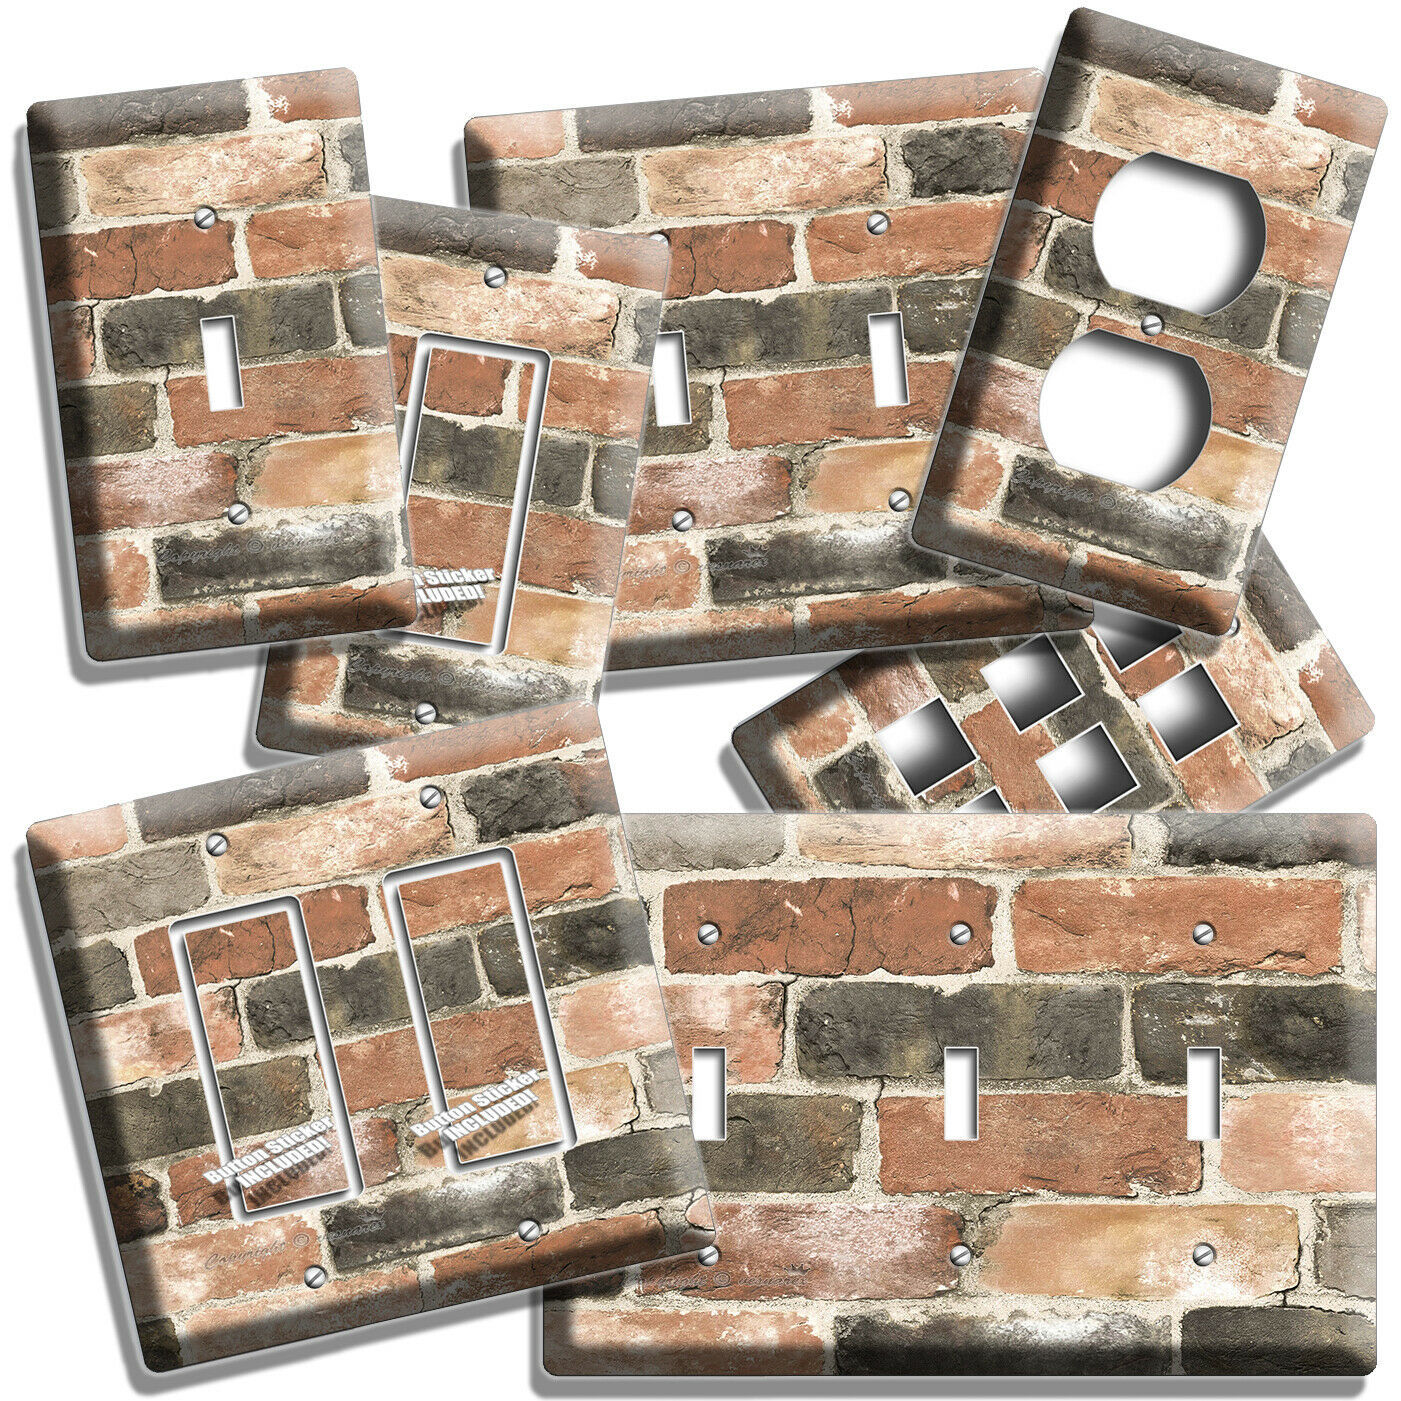 RUSTIC RECLAIMED WORN OUT BRICK WALL LIGHT SWITCH OUTLET PLAT ROOM HOME HD DECOR